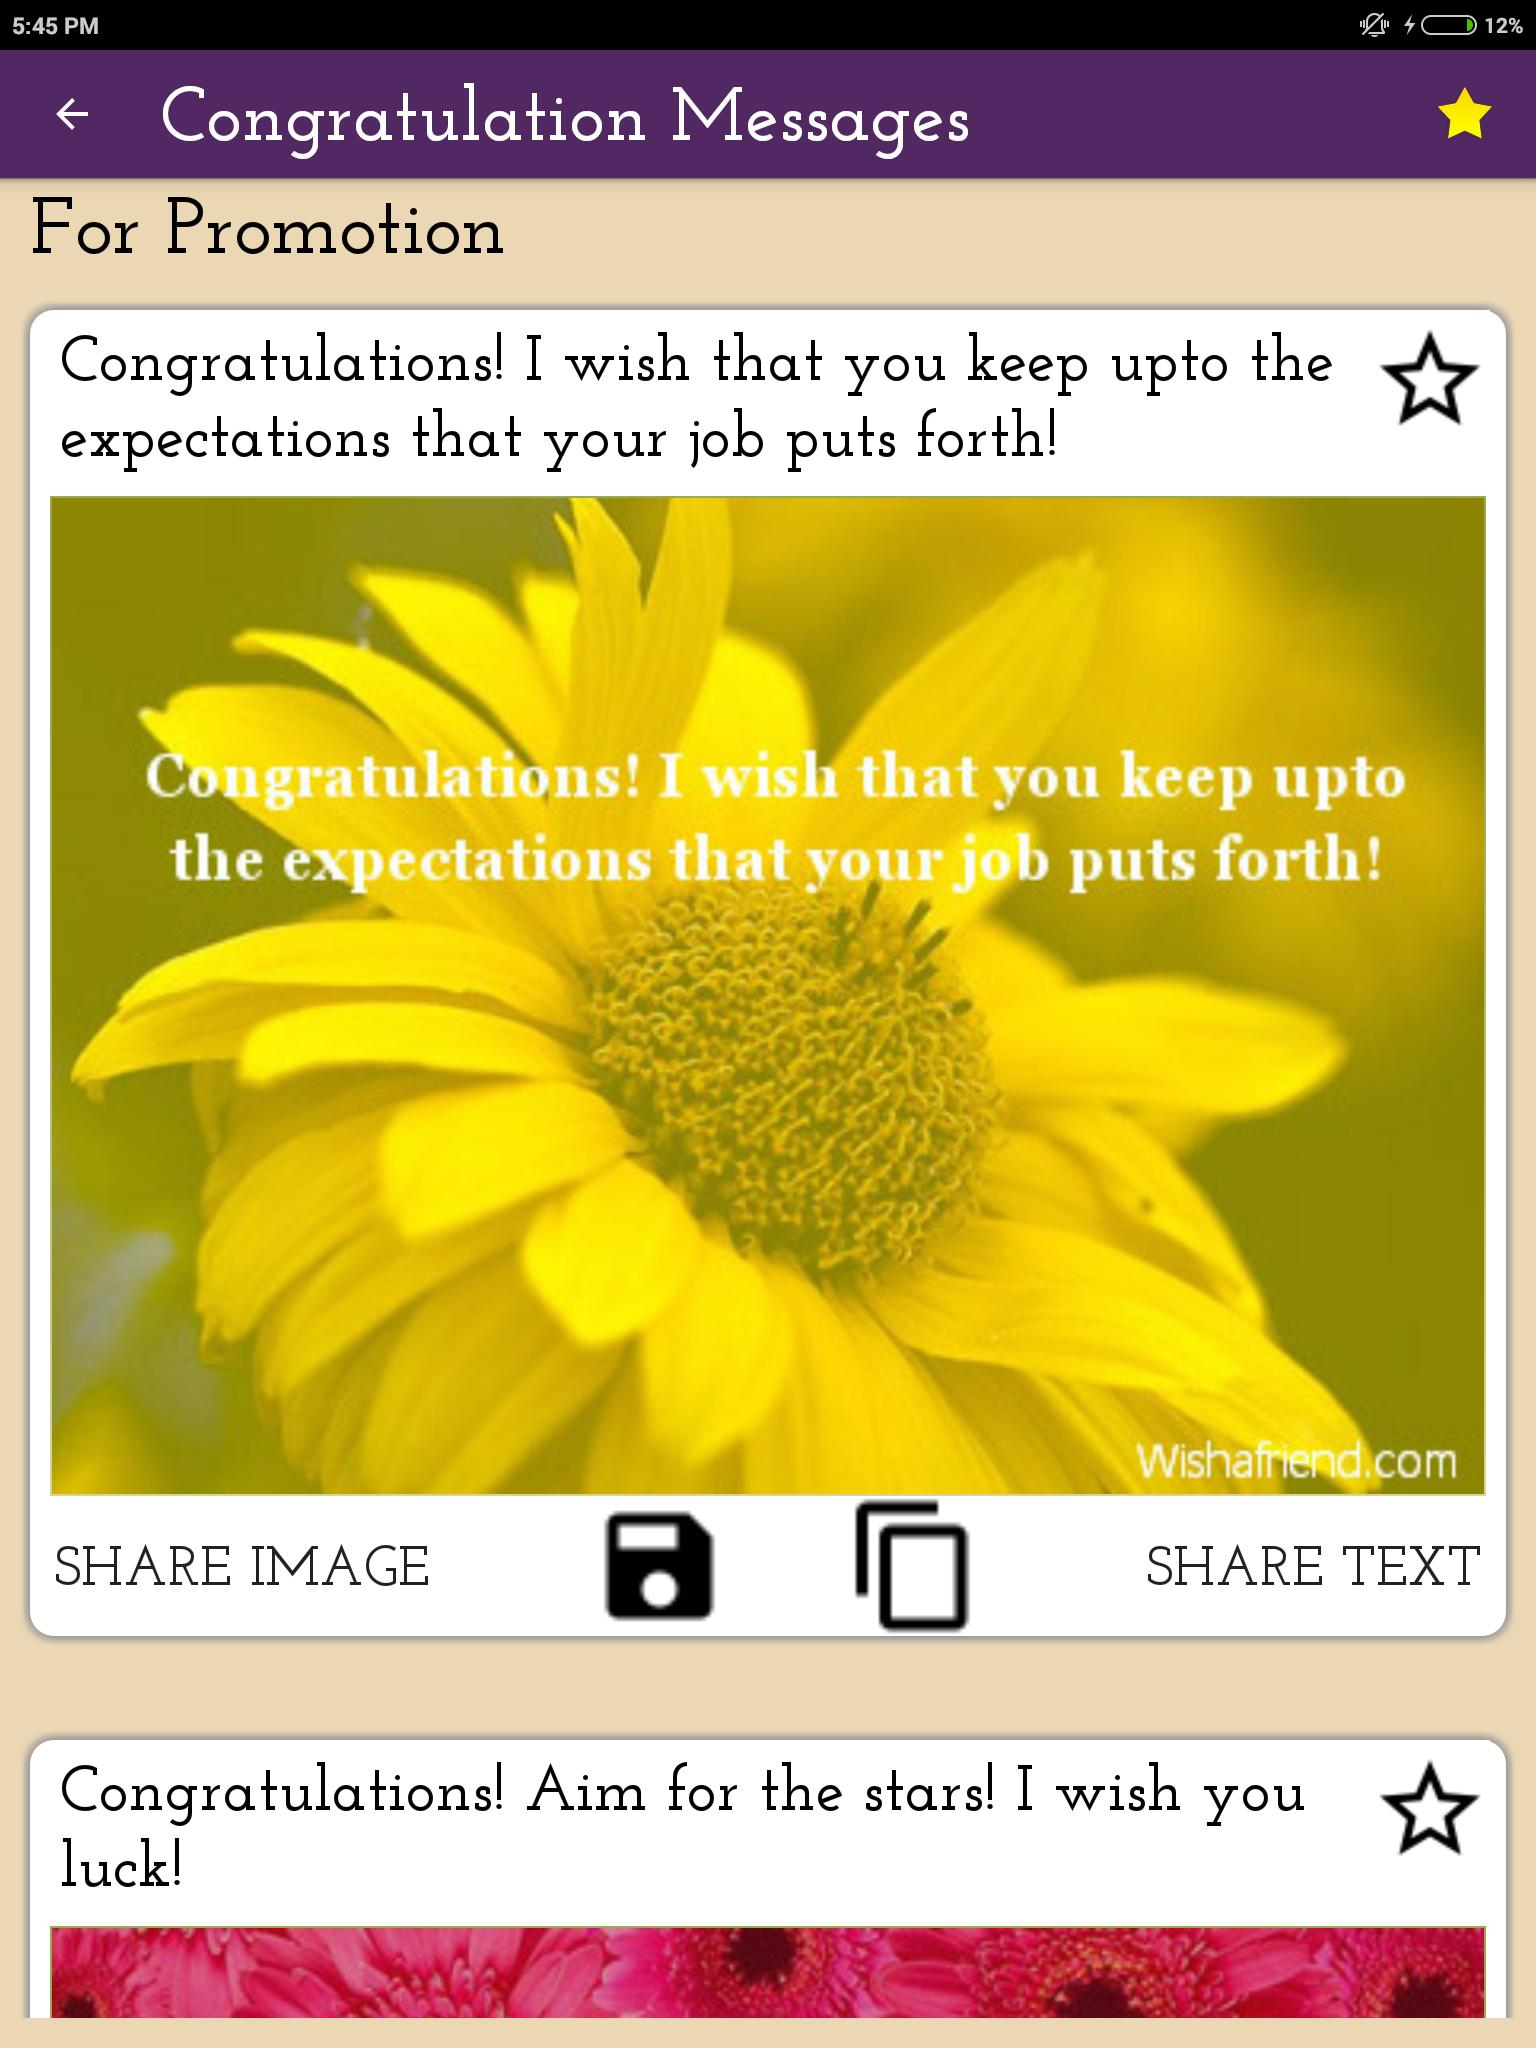 Congratulations Messages, Wishes & Quote Images for Android